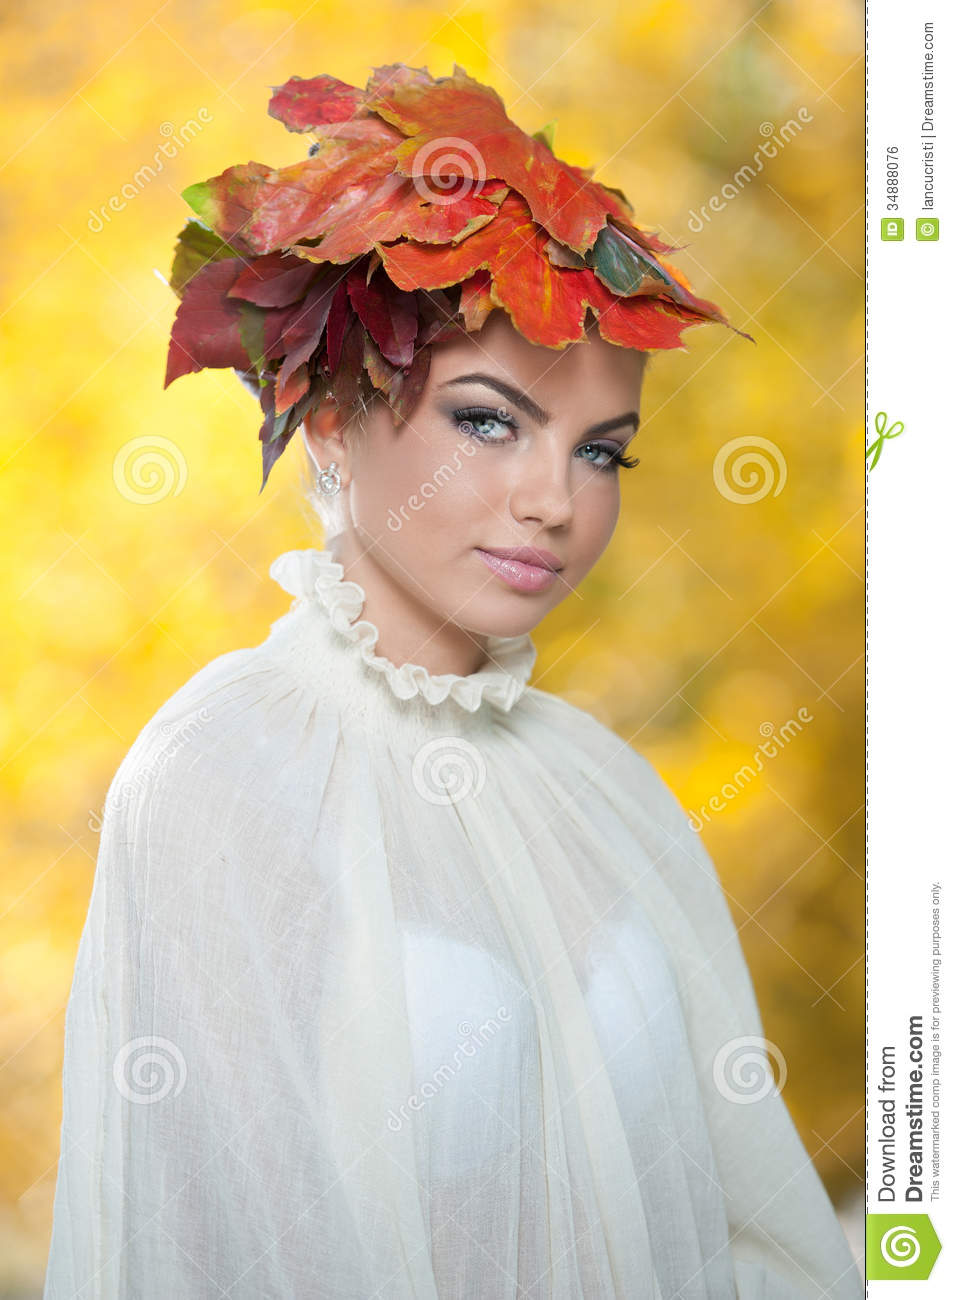 Autumn Woman Beautiful Creative Makeup And Hair Style In